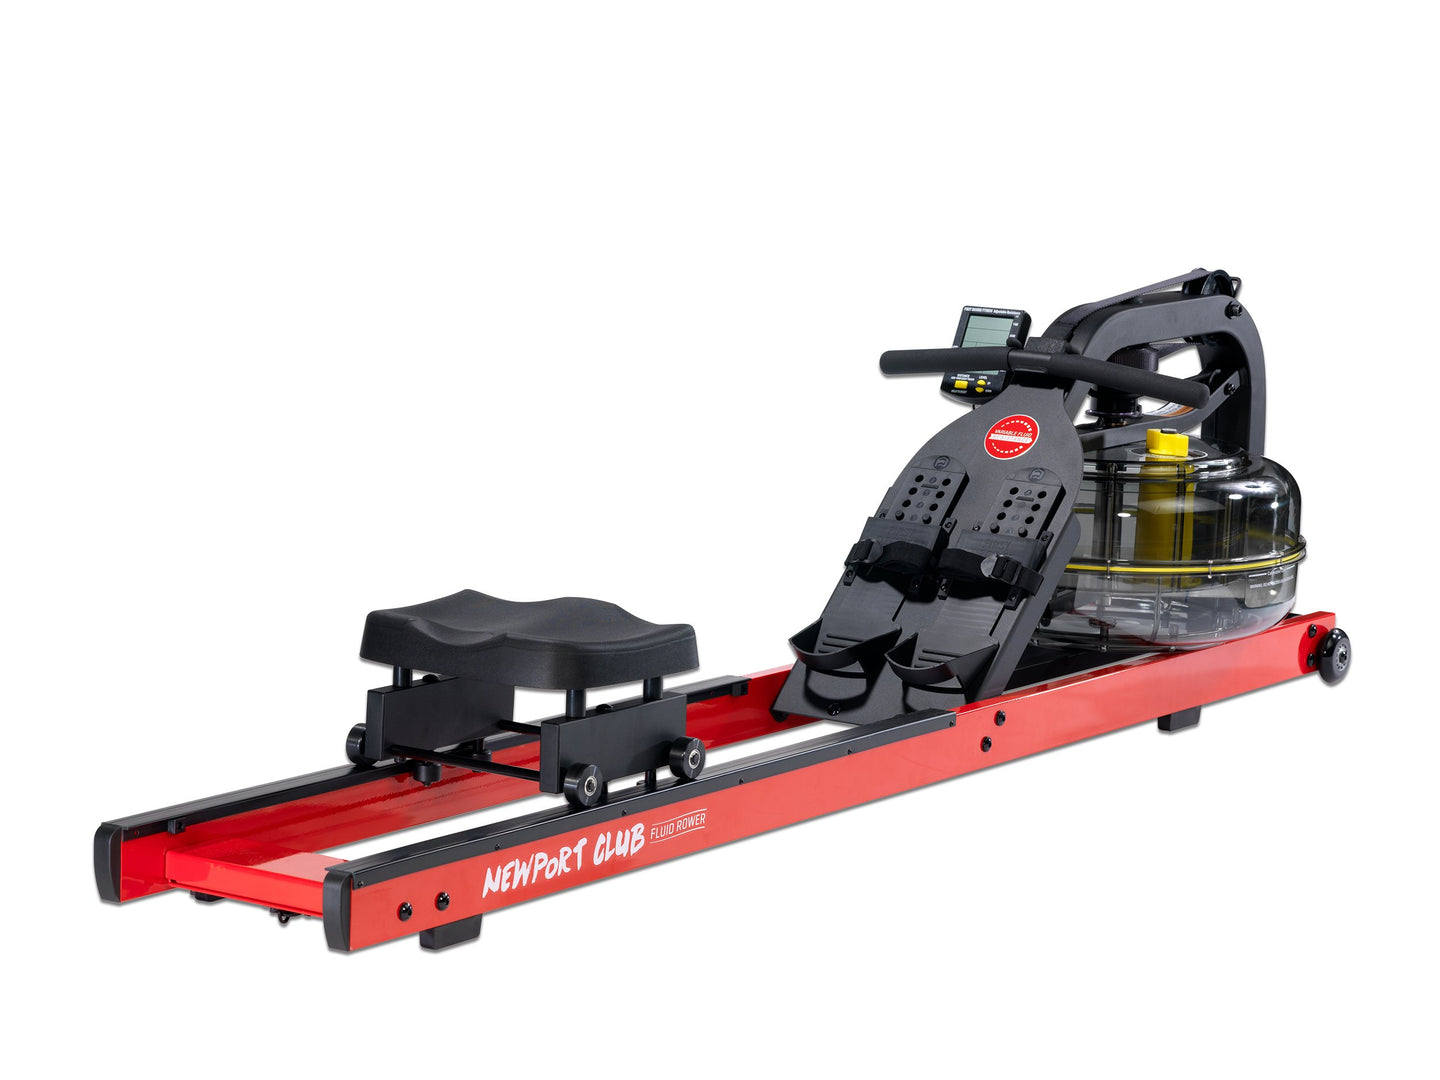 Newport Club Plus Fluid Rower by First Degree Fitness version